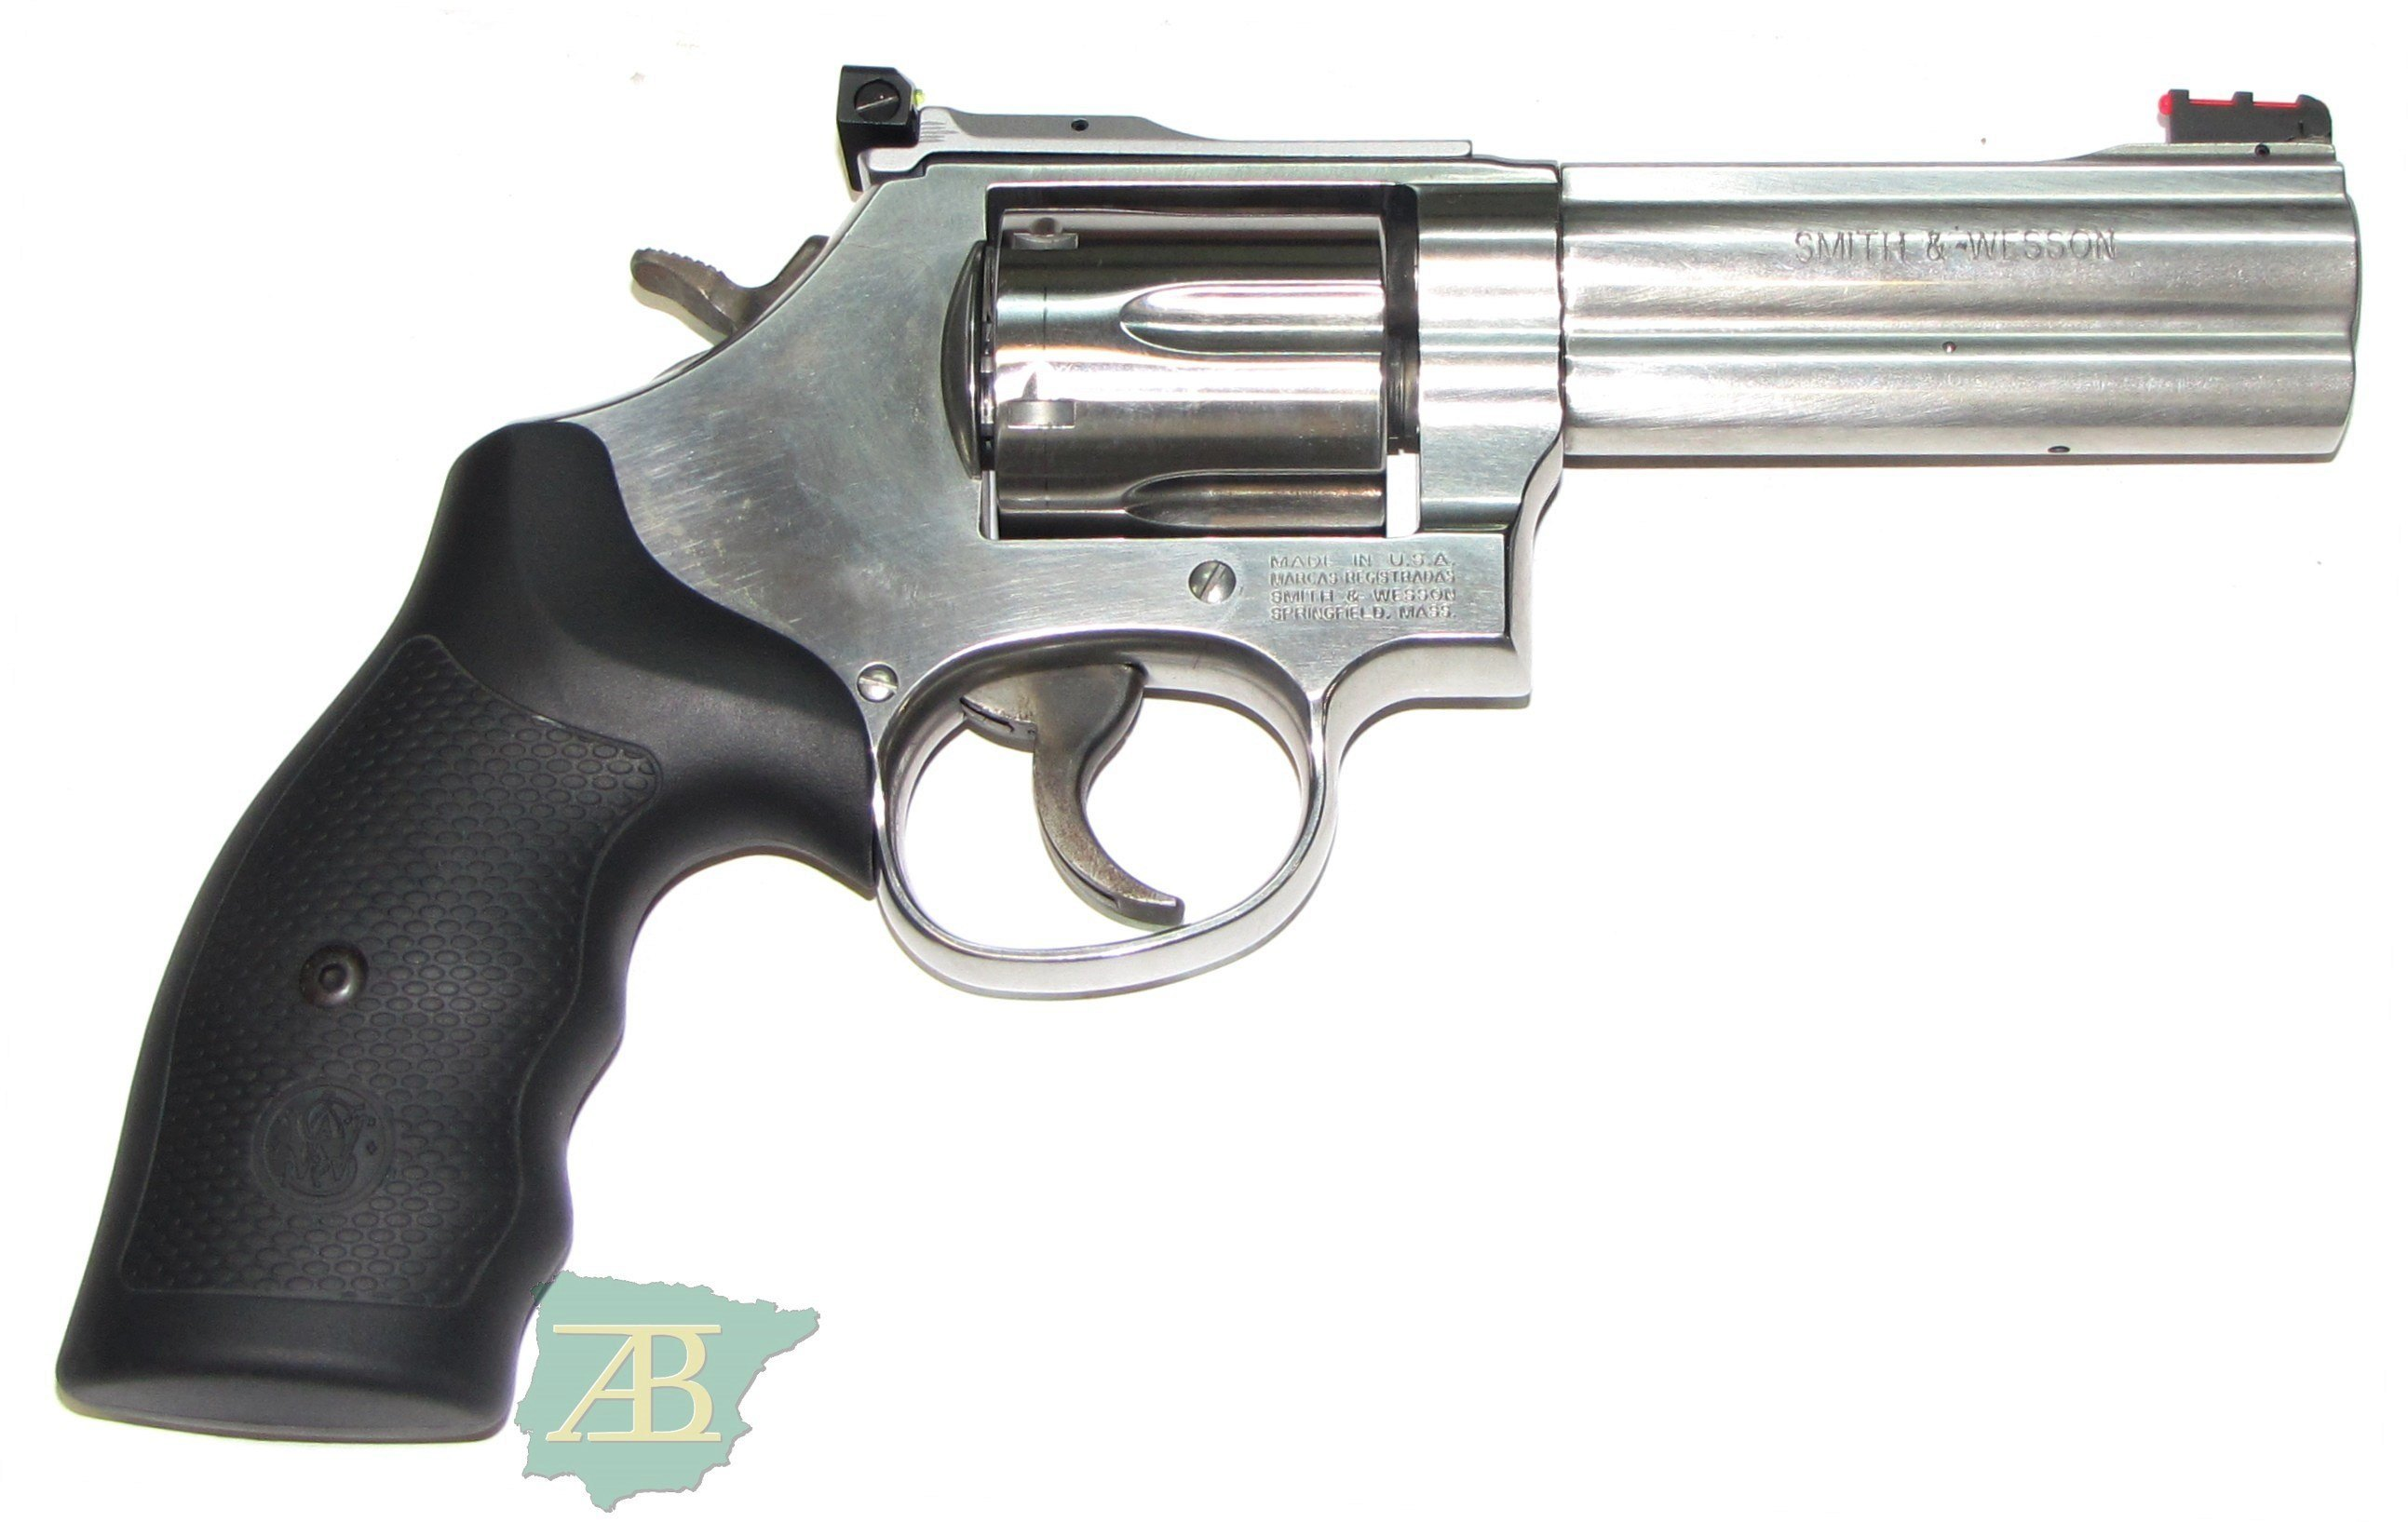 REVÓLVER SMITH & WESSON .357 MAGNUM Ref. 4897